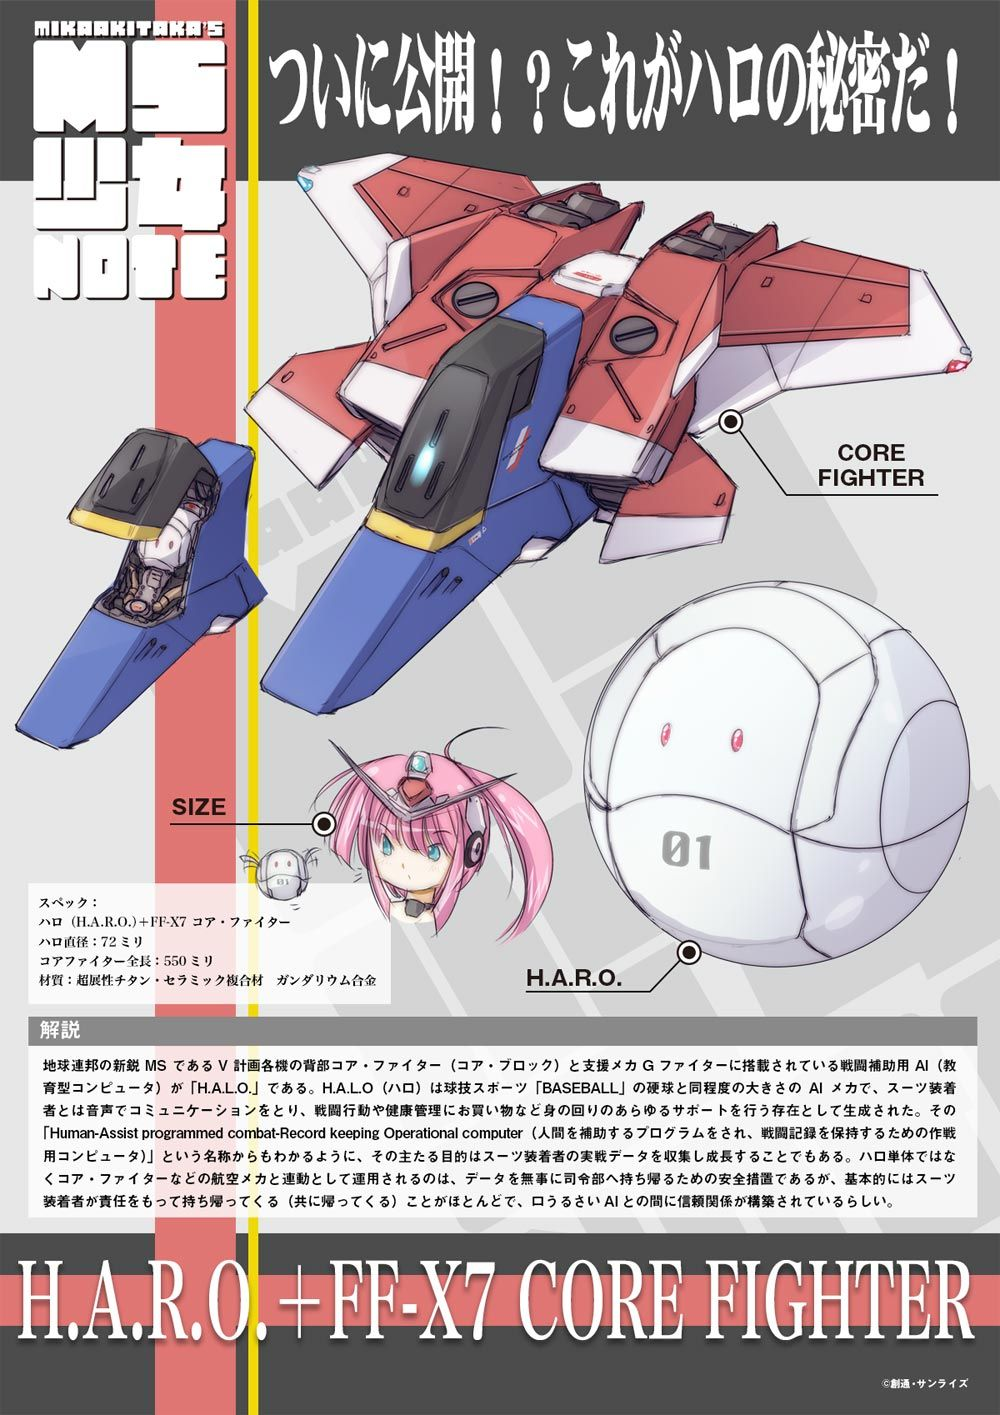 【第37回】MIKA AKITAKA'S MS少女NOTE in 2020 (With images